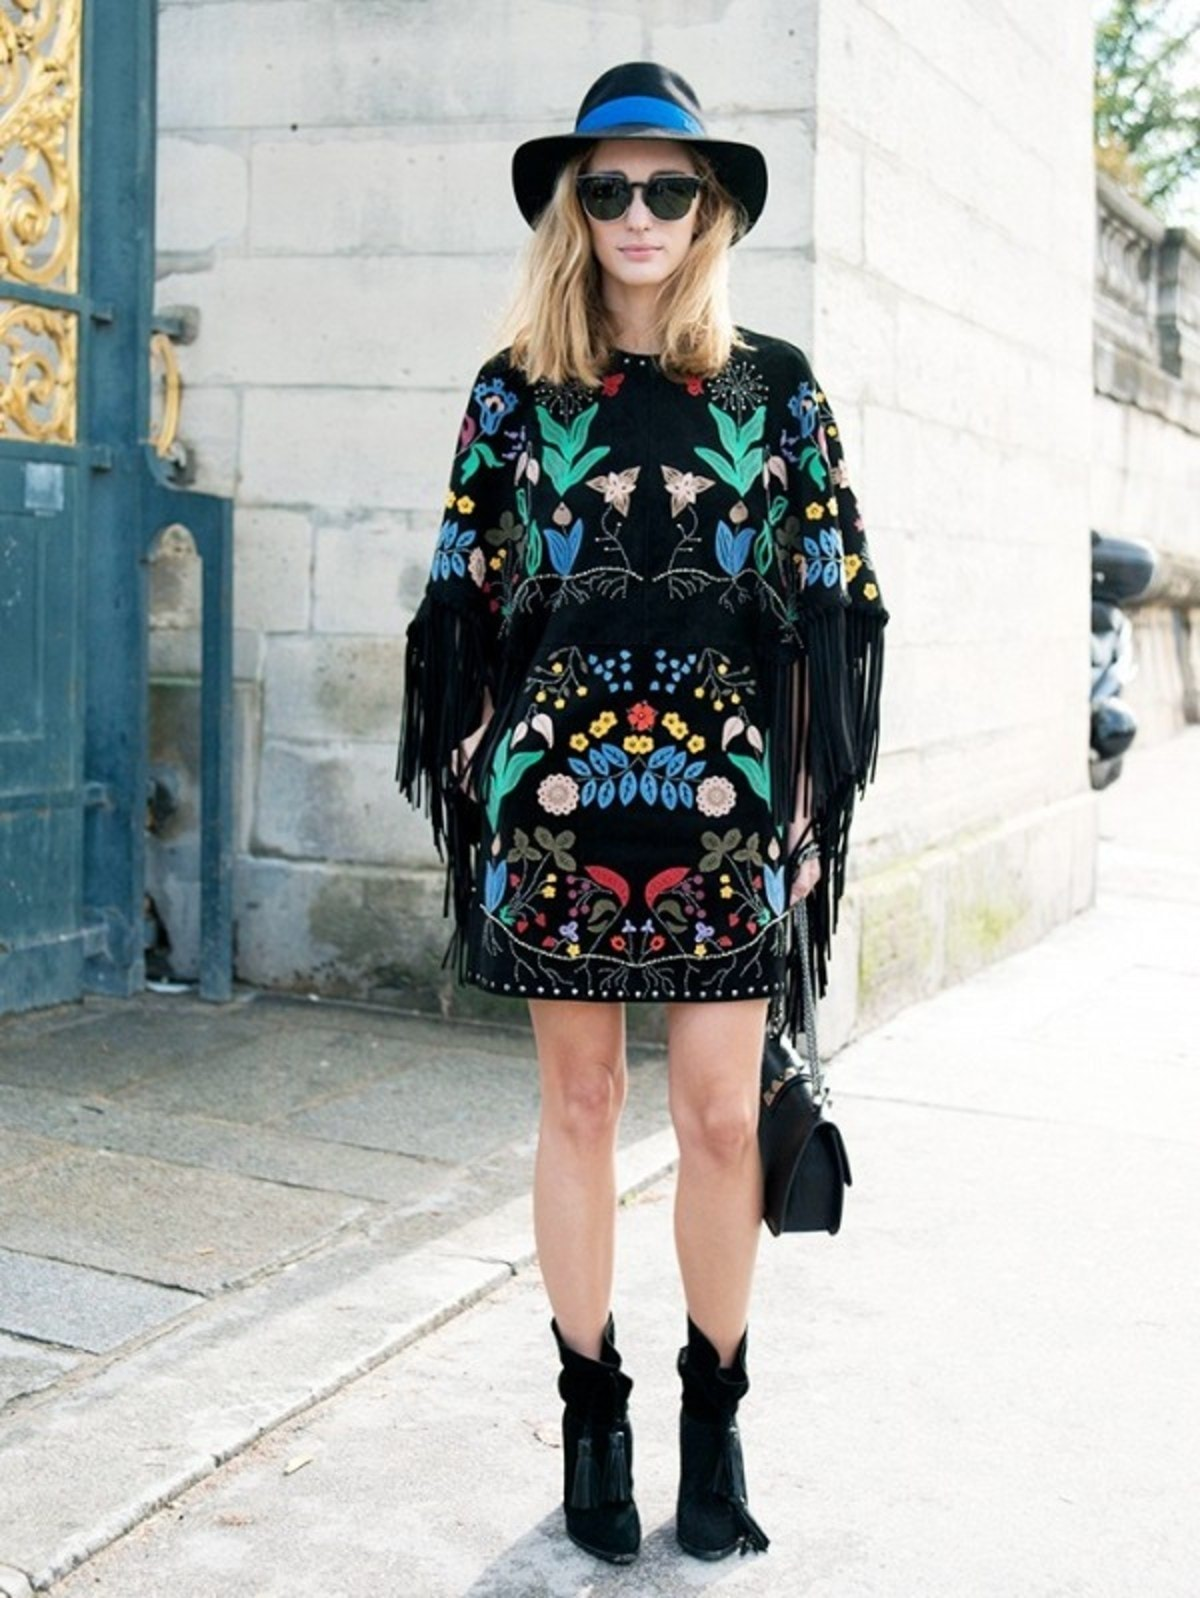 how-to-wear-a-cape-its-not-as-complicated-as-you-think-1877537-1471885588.600x0c